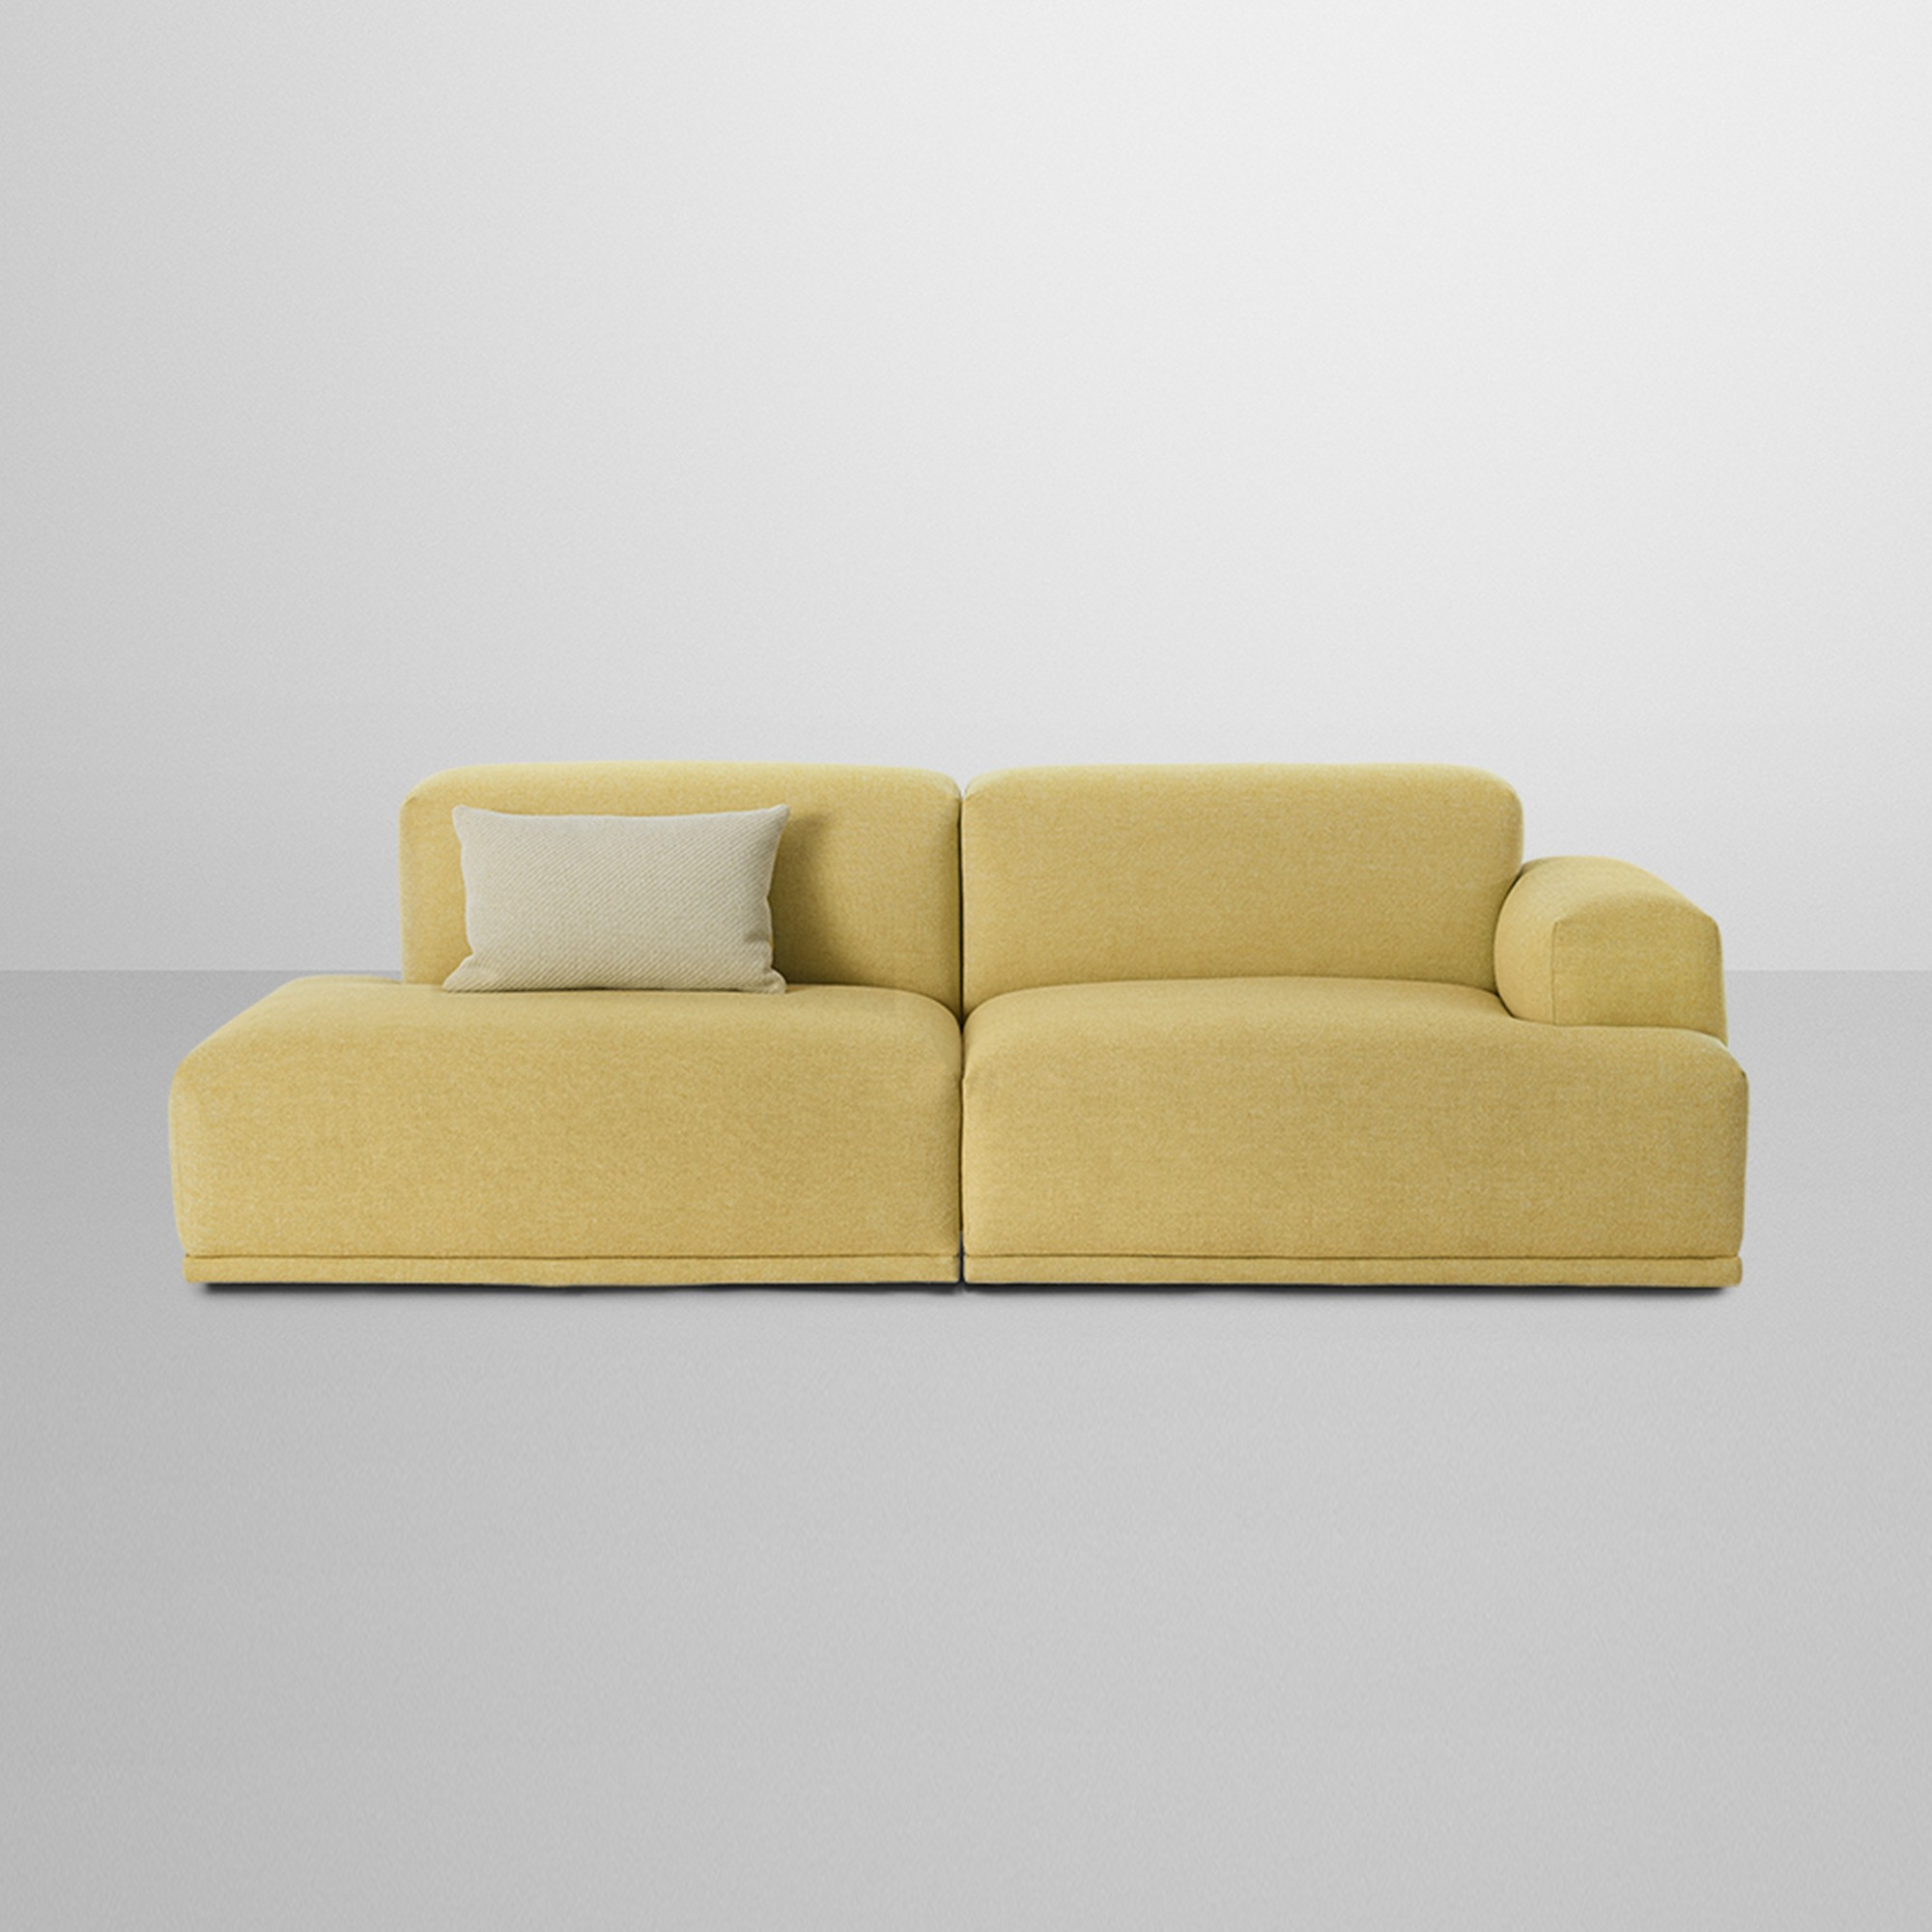 Wohnzimmerz Hay Mags With Hausa Mags Soft Modular Sofa By Hay Also